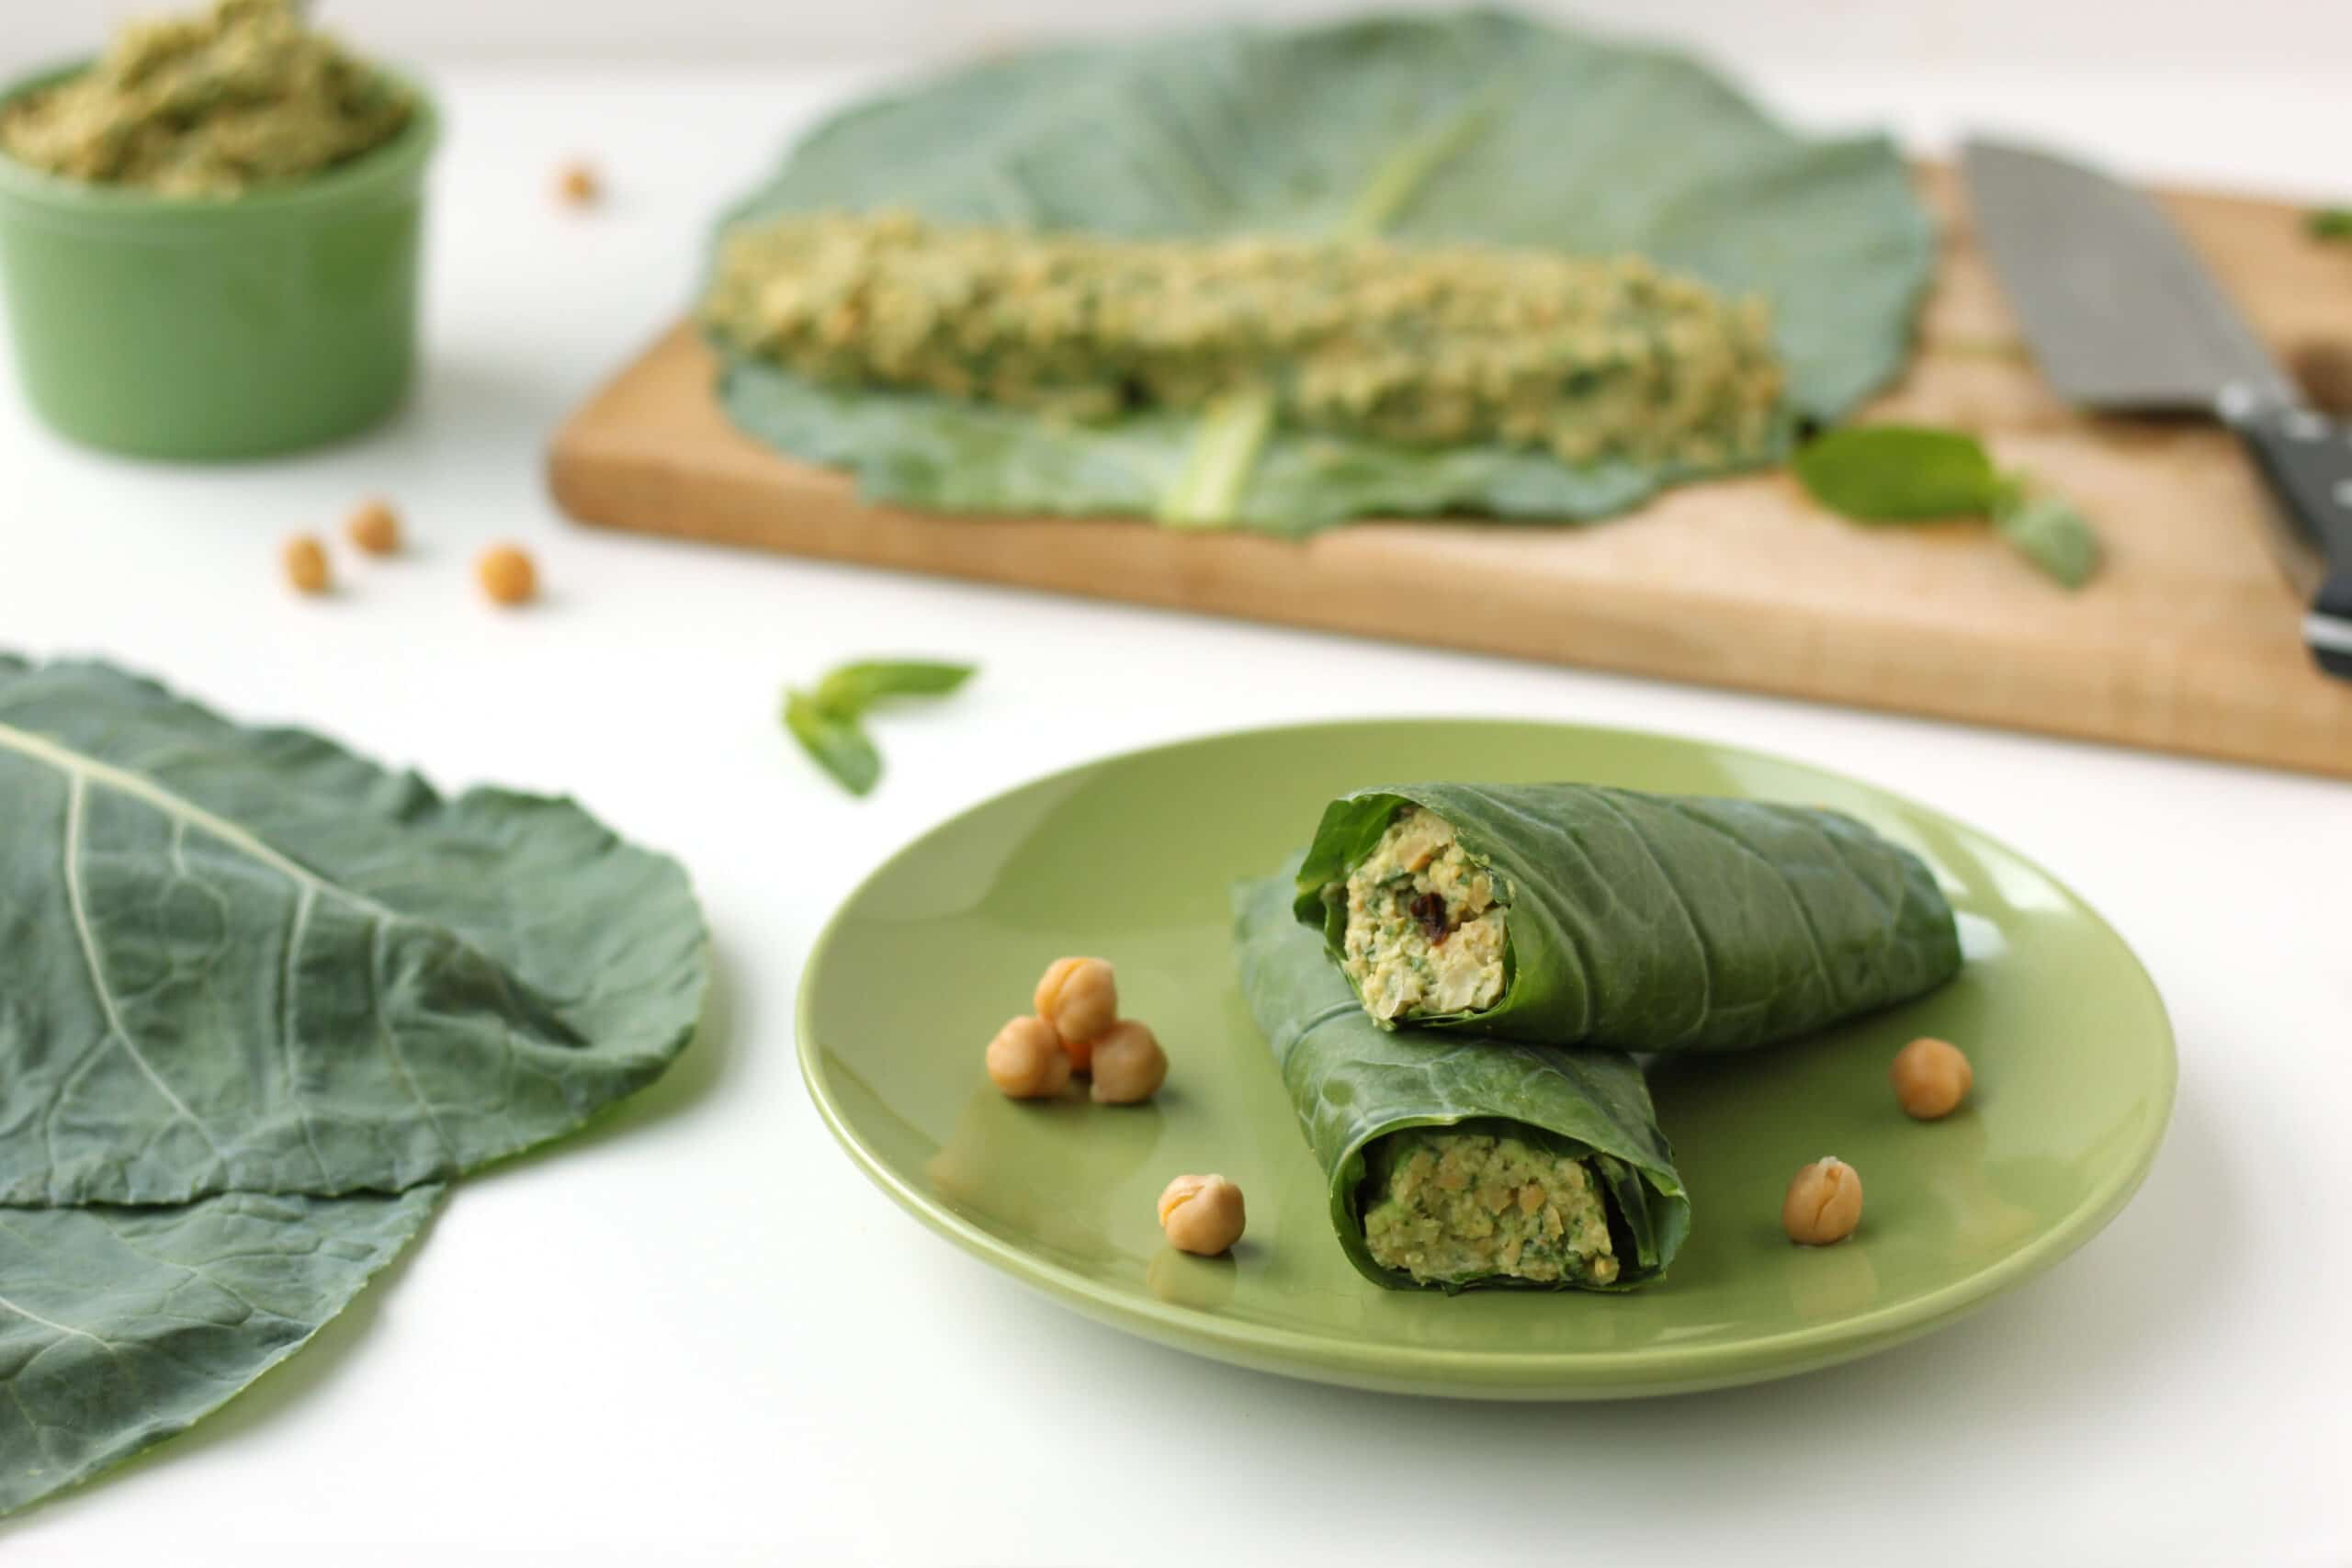 Healthy Homemade Soups & Sandwiches Smashed Chickpea Avocado Wrap by @jesselwellness #wrap #healthysandwich